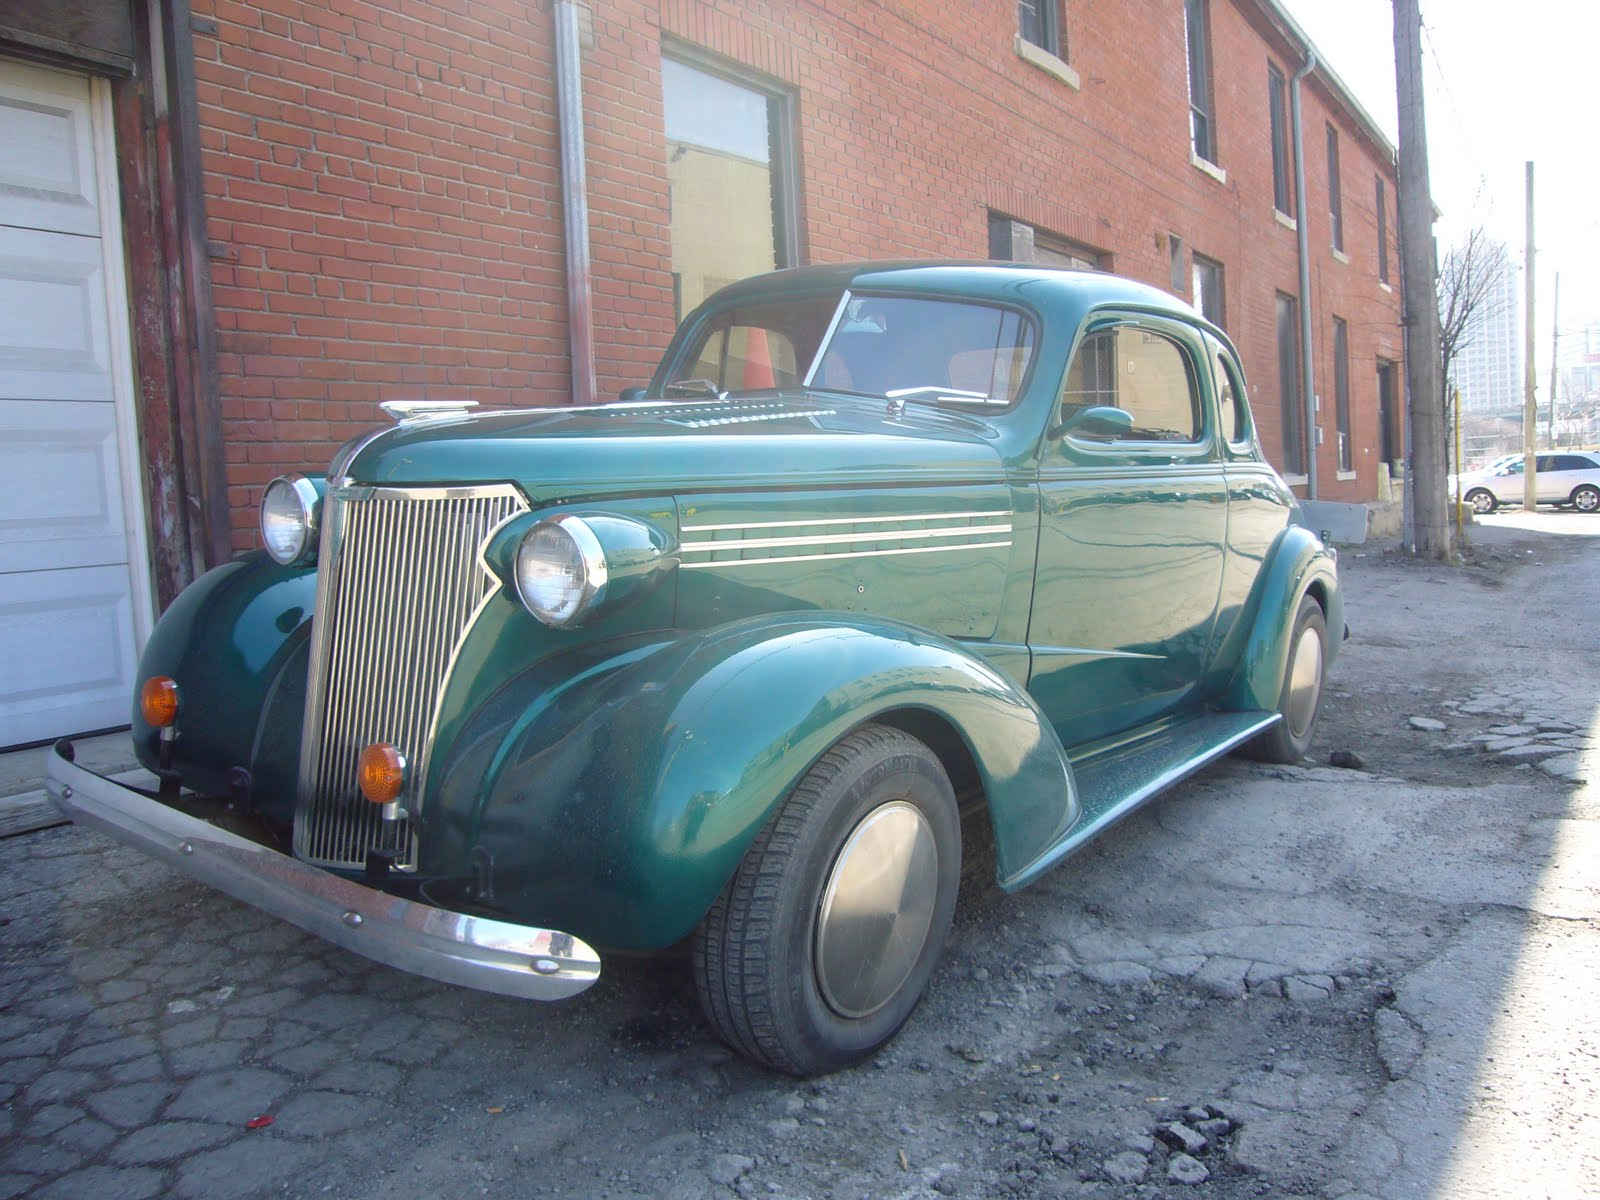 lost toronto: More Cool Cars/1936 Chevy Business Coupe